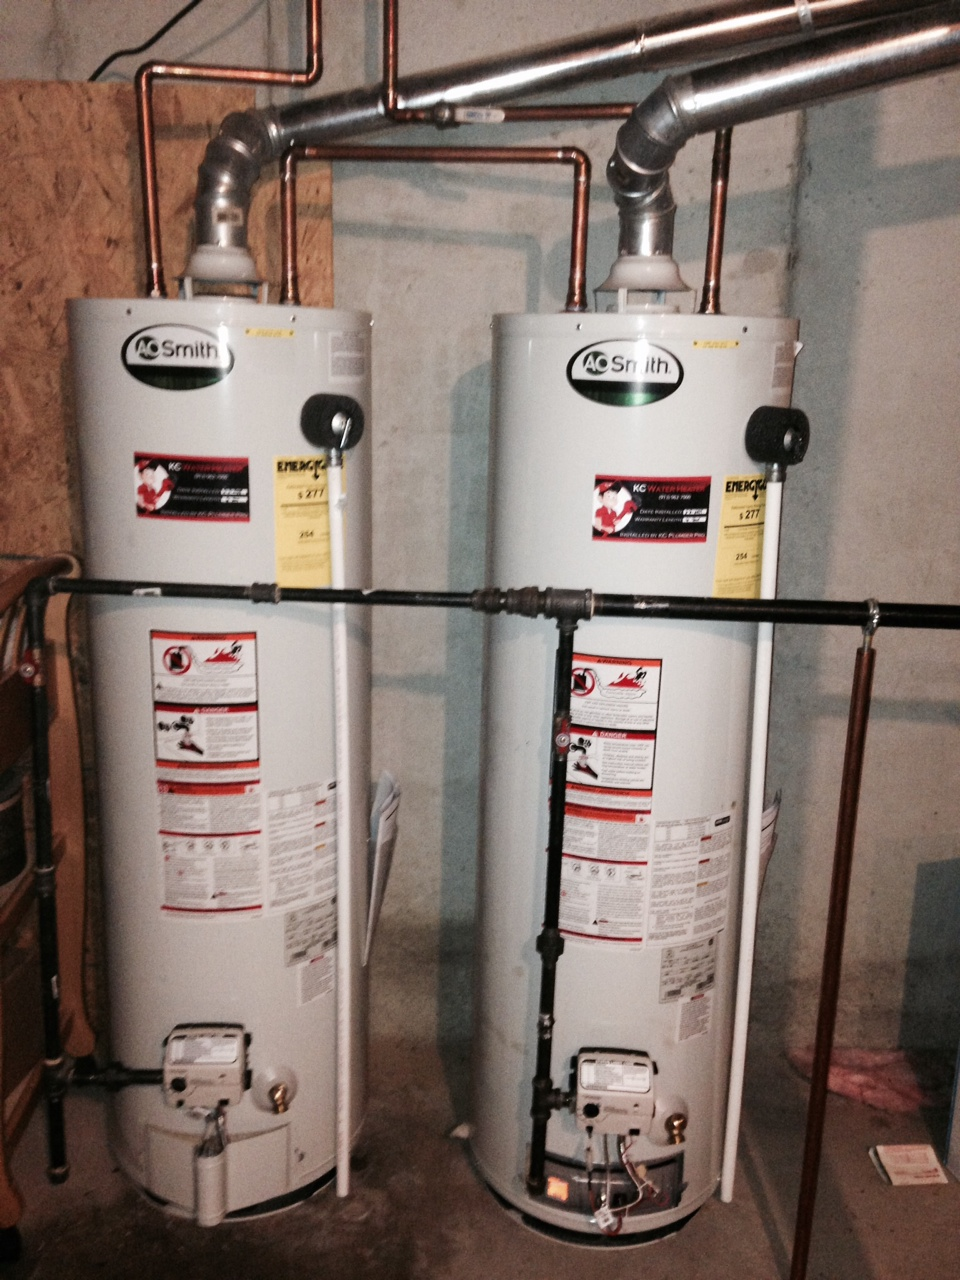 can you hook up two hot water heaters